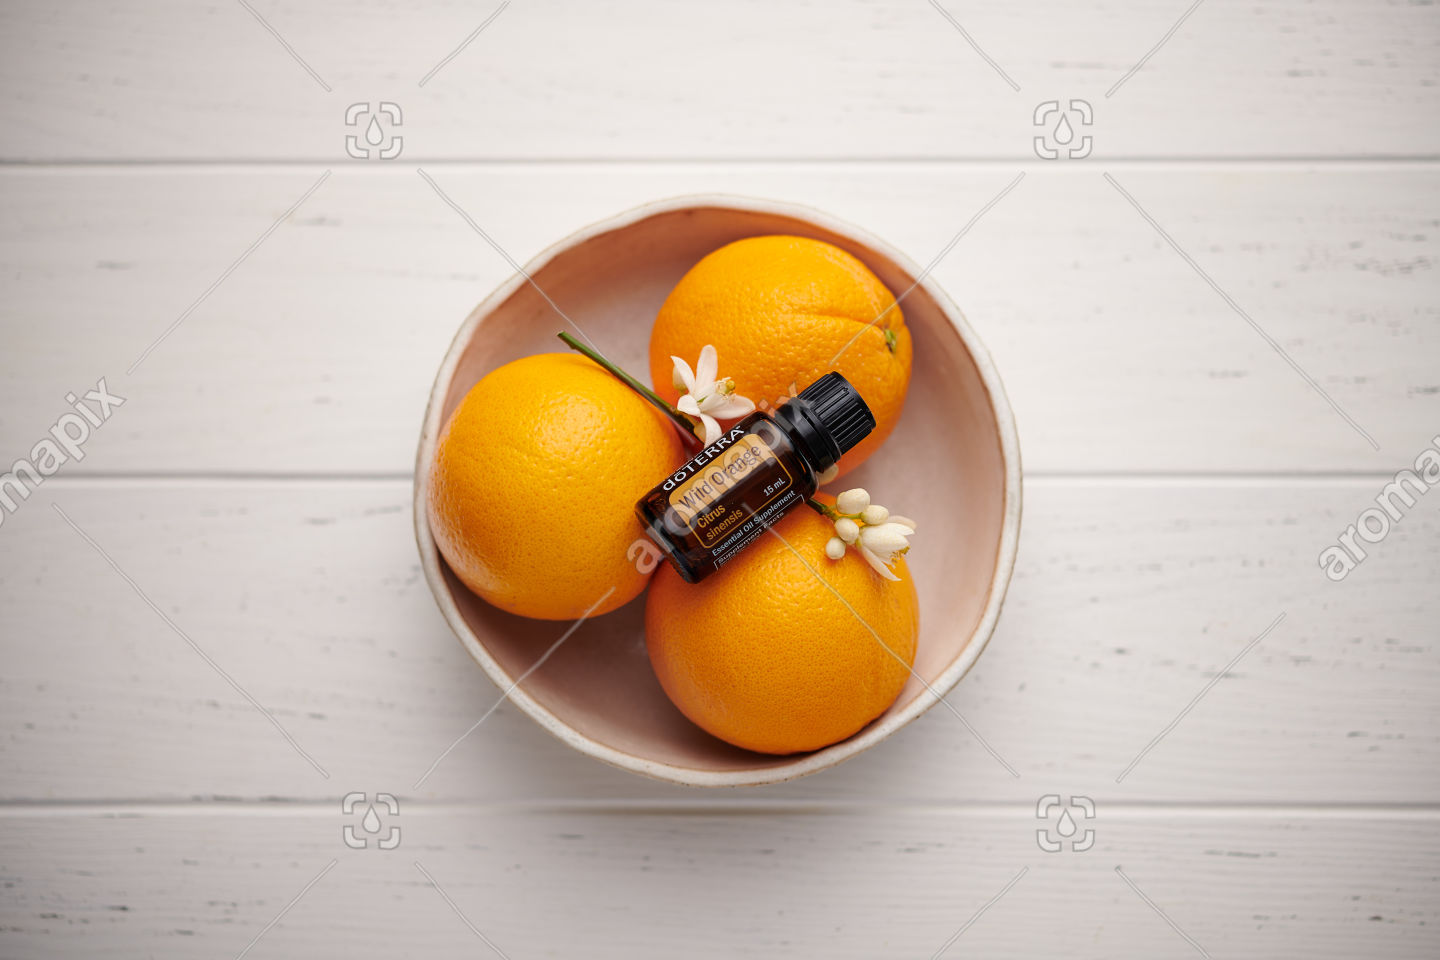 doTERRA Wild Orange with seville oranges and orange blossoms on white